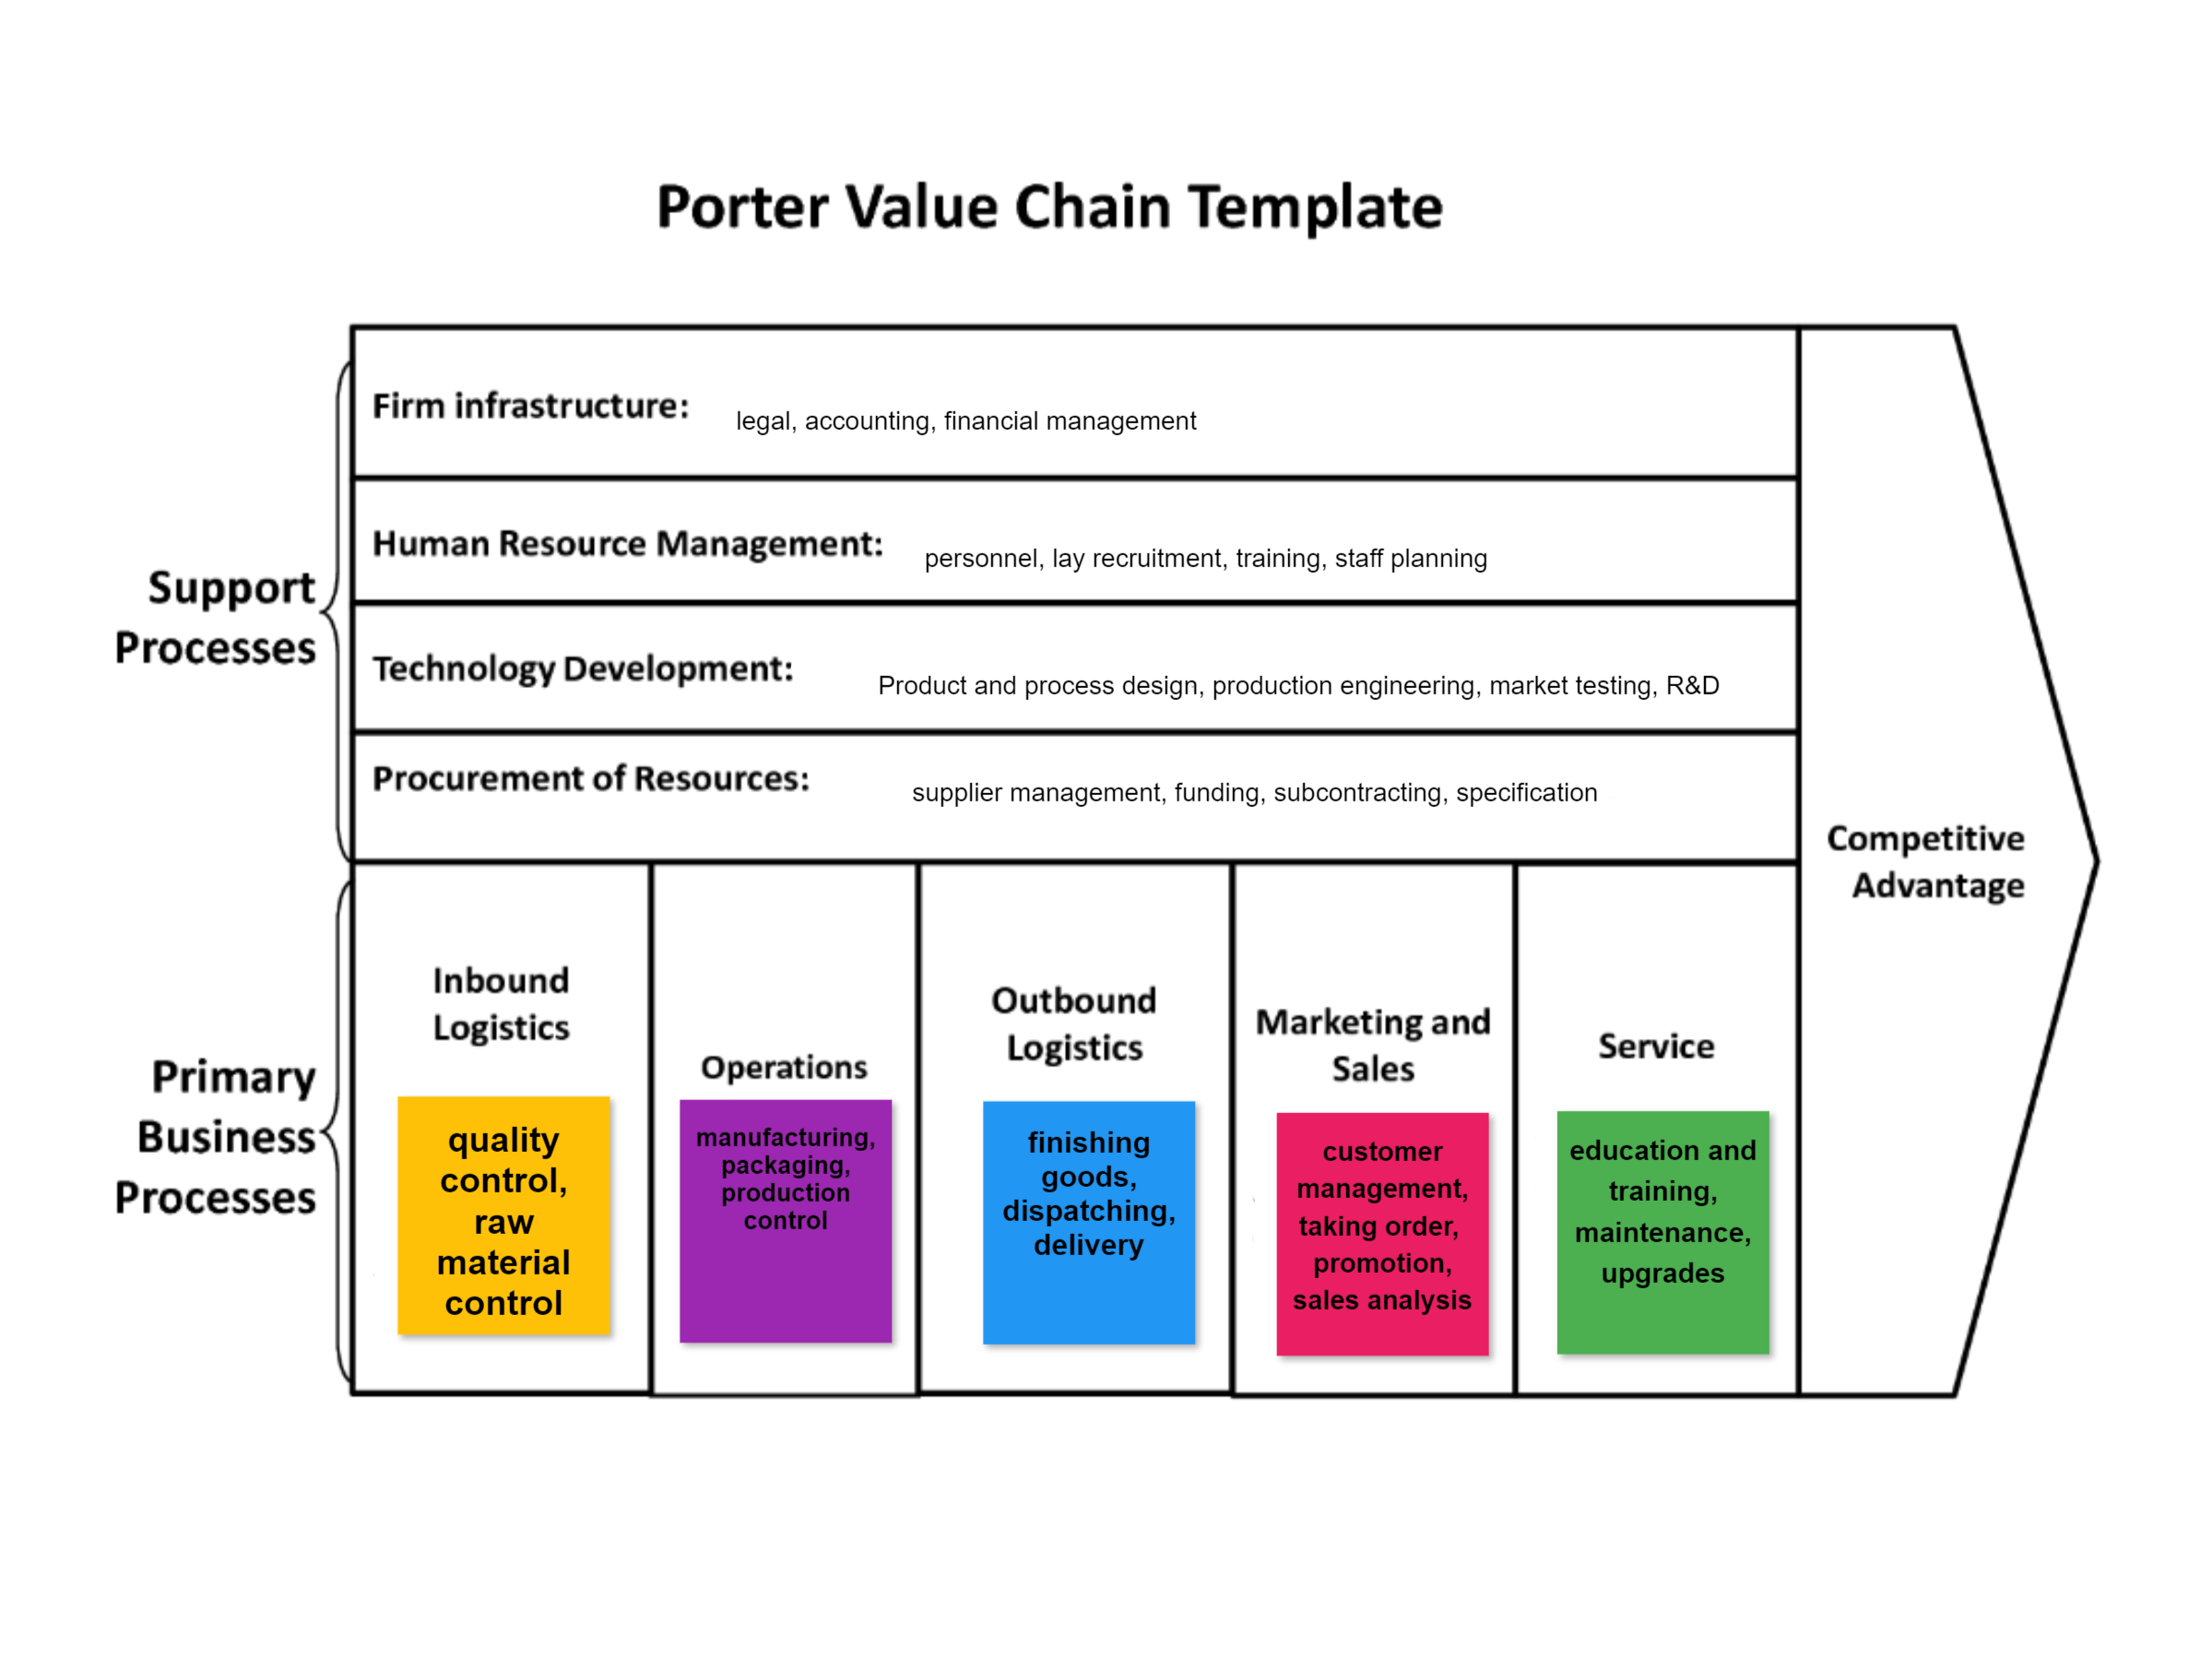 Ux Design Value Chain Template With An Example Click It And Create Your Own With An Interacti Financial Management Human Resource Management Planning Process